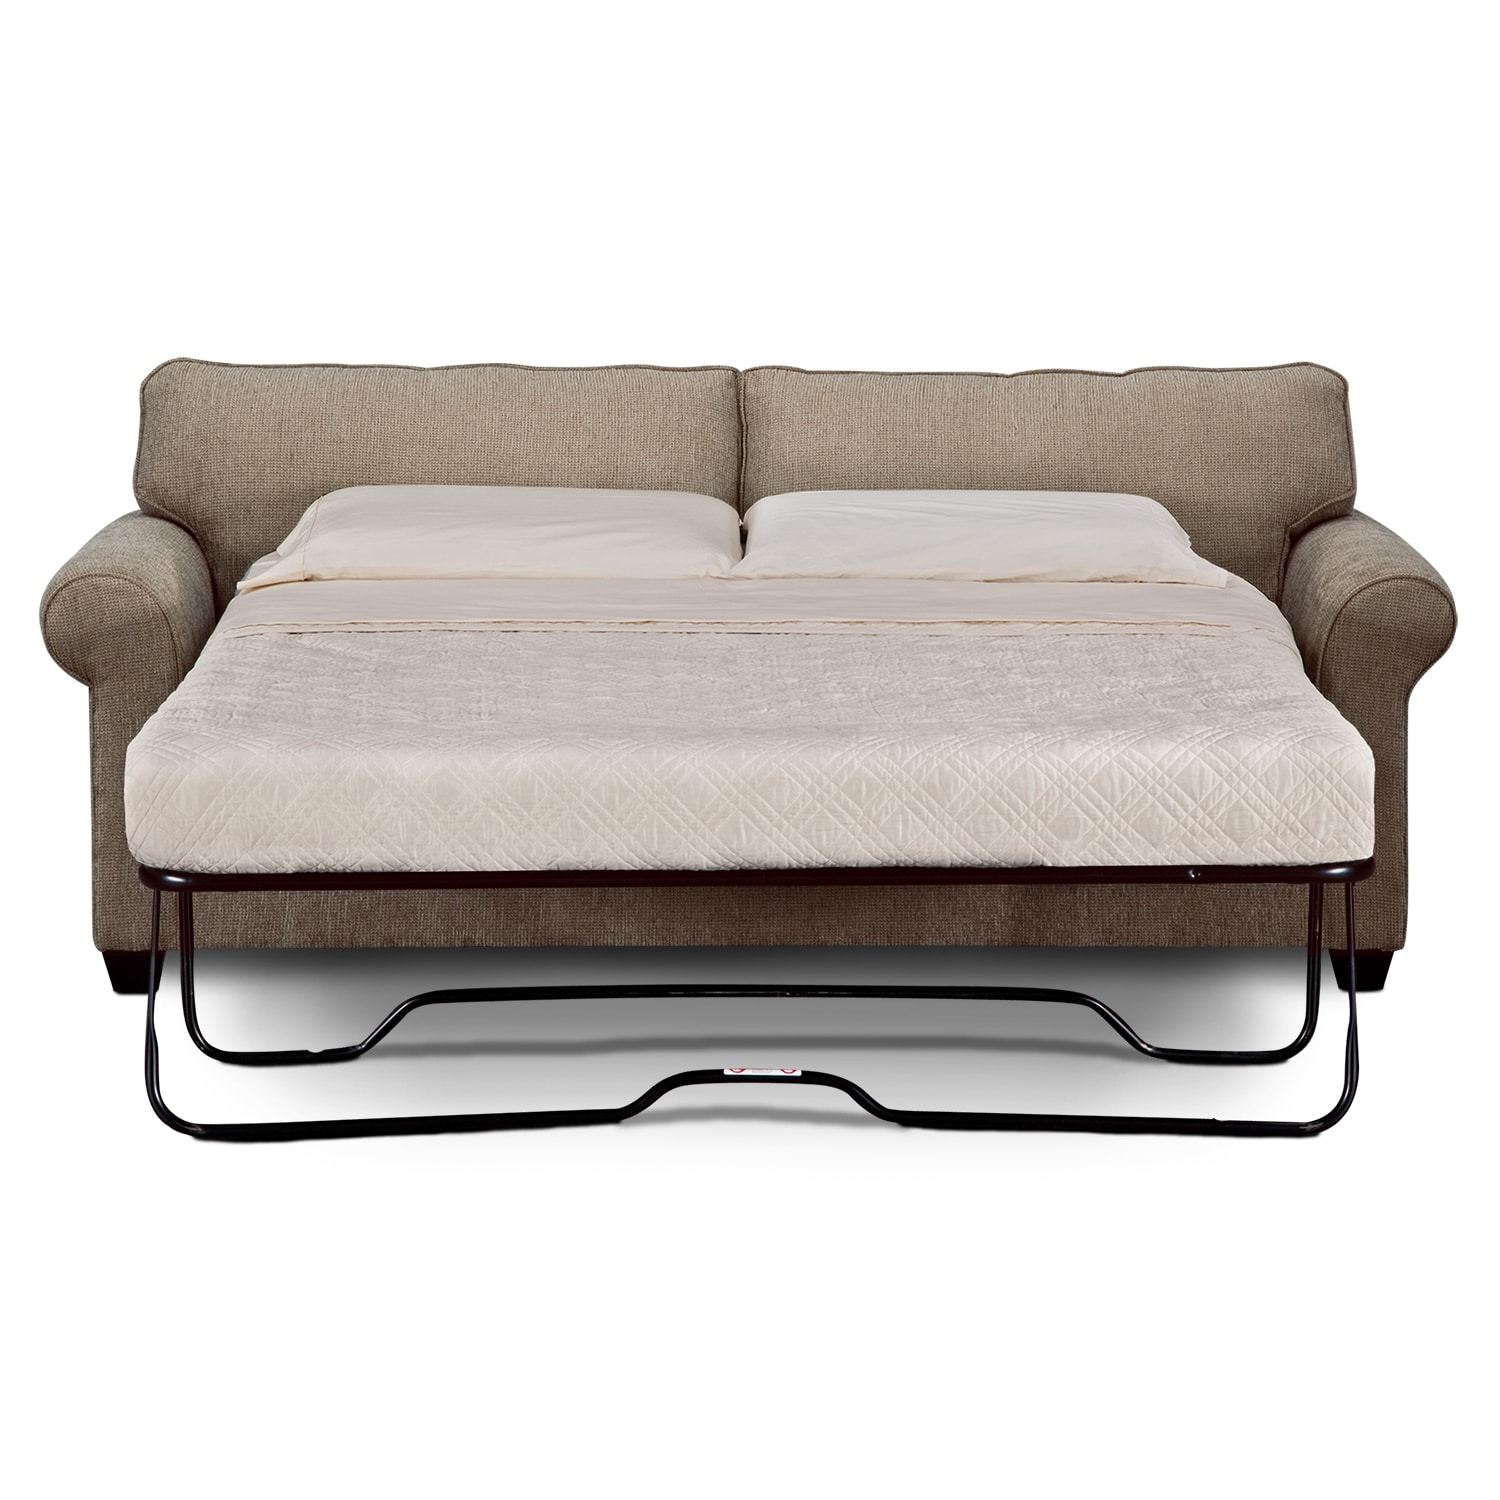 Fletcher queen sleeper sofa value city furniture for Sofa queen bed